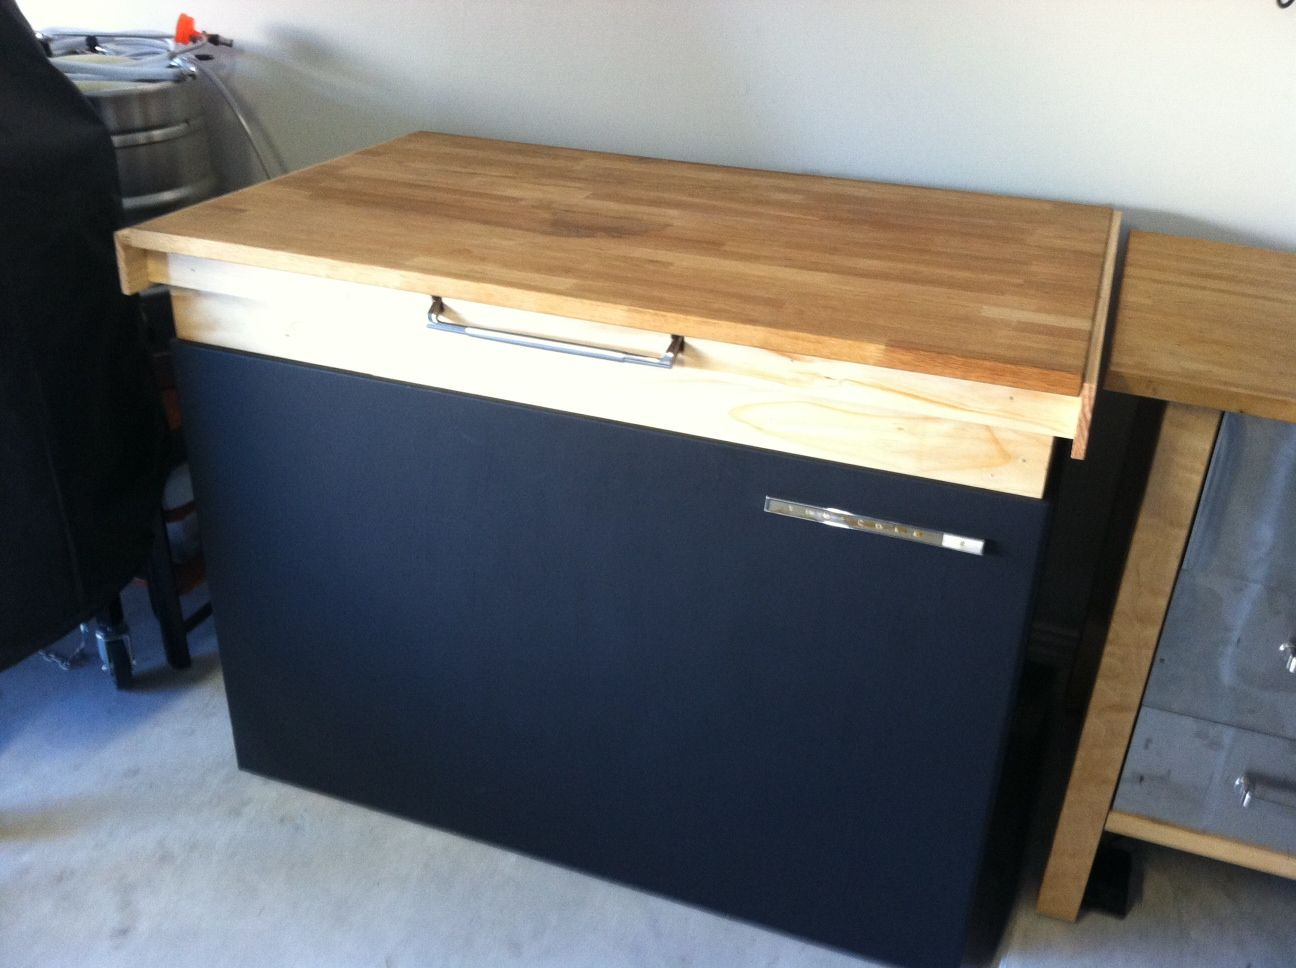 50 Cu Ft Chest Freezer Kegerator As We Can See From Red